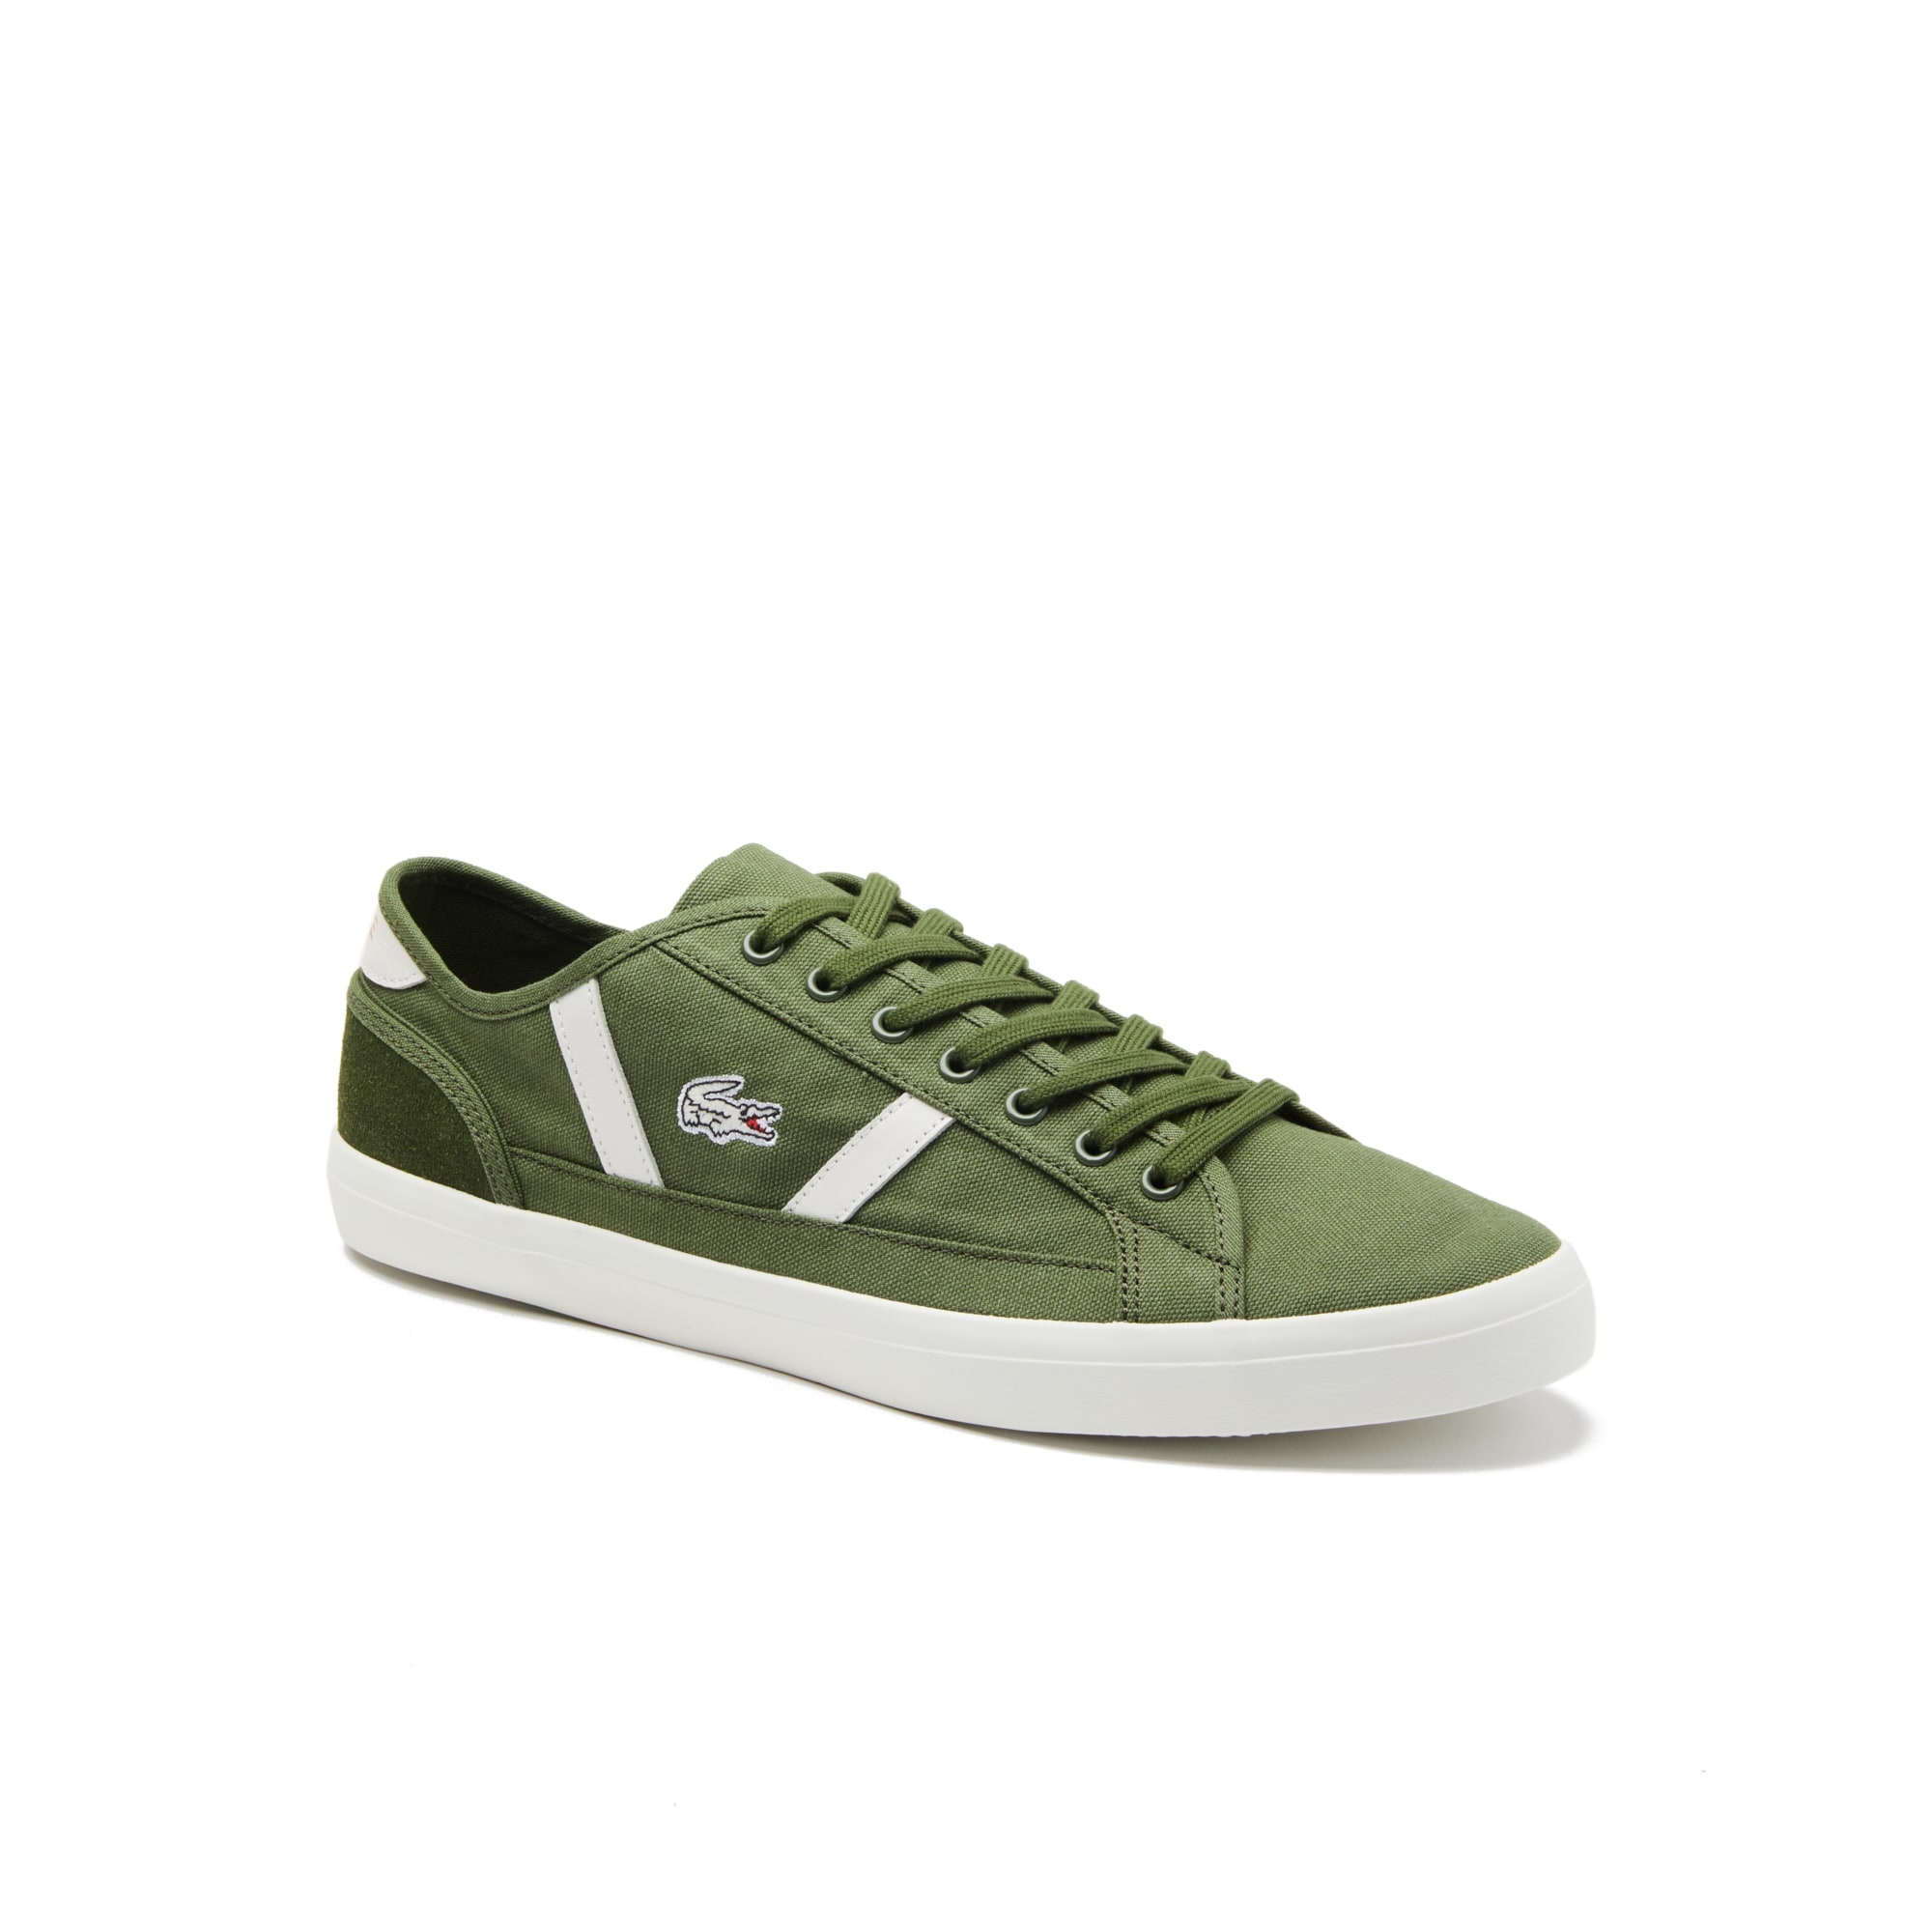 1d6f6123b + 3 colors + 6 colors. New. Men s Sideline Canvas and Leather Sneakers